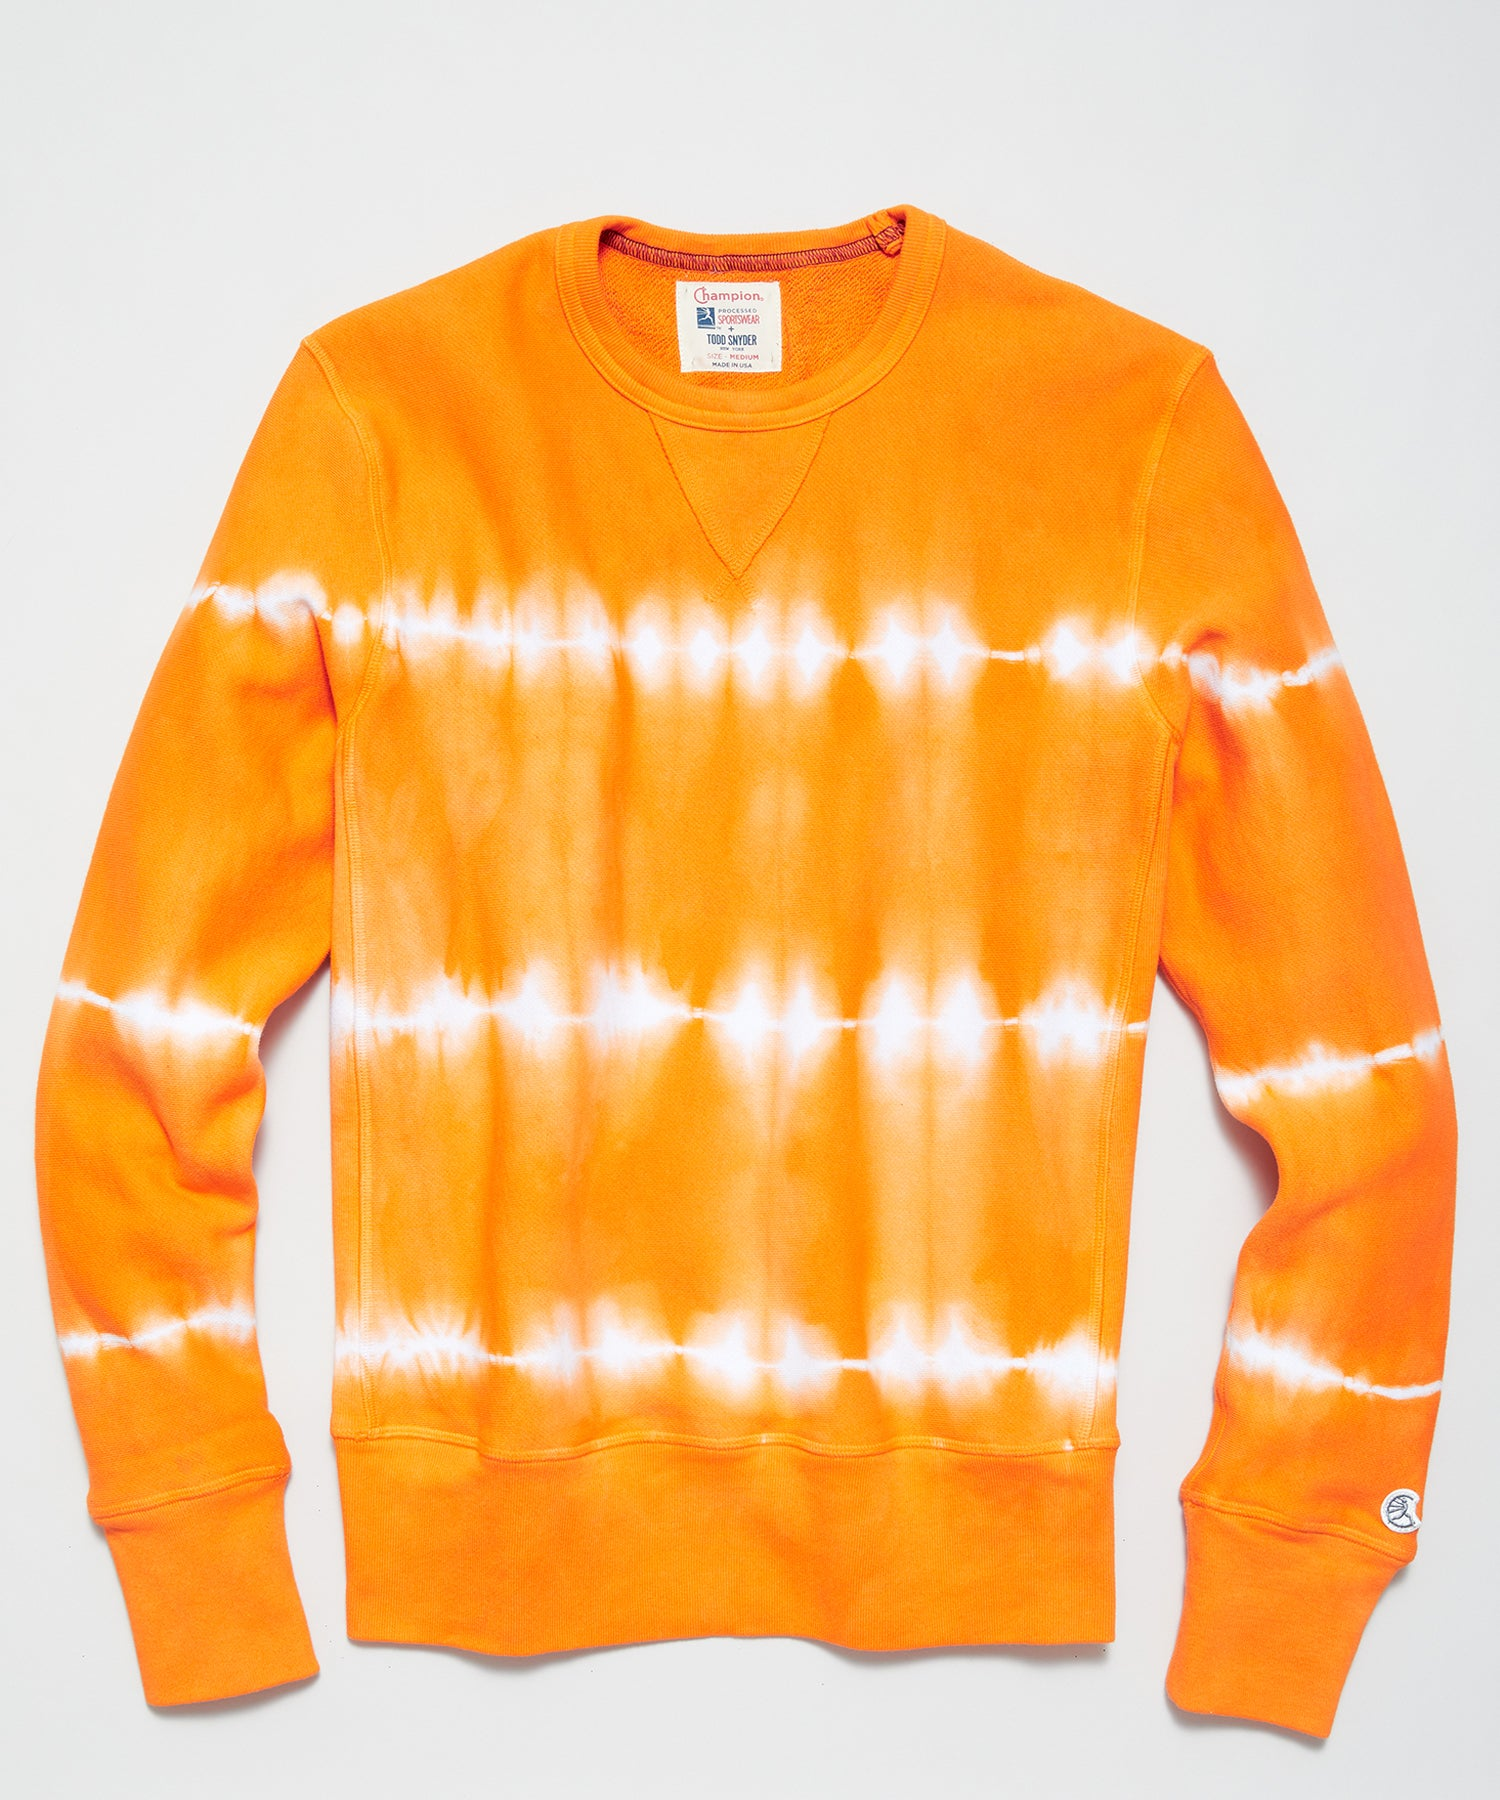 Neon Tie Dye Reverse Weave Crewneck in Orange